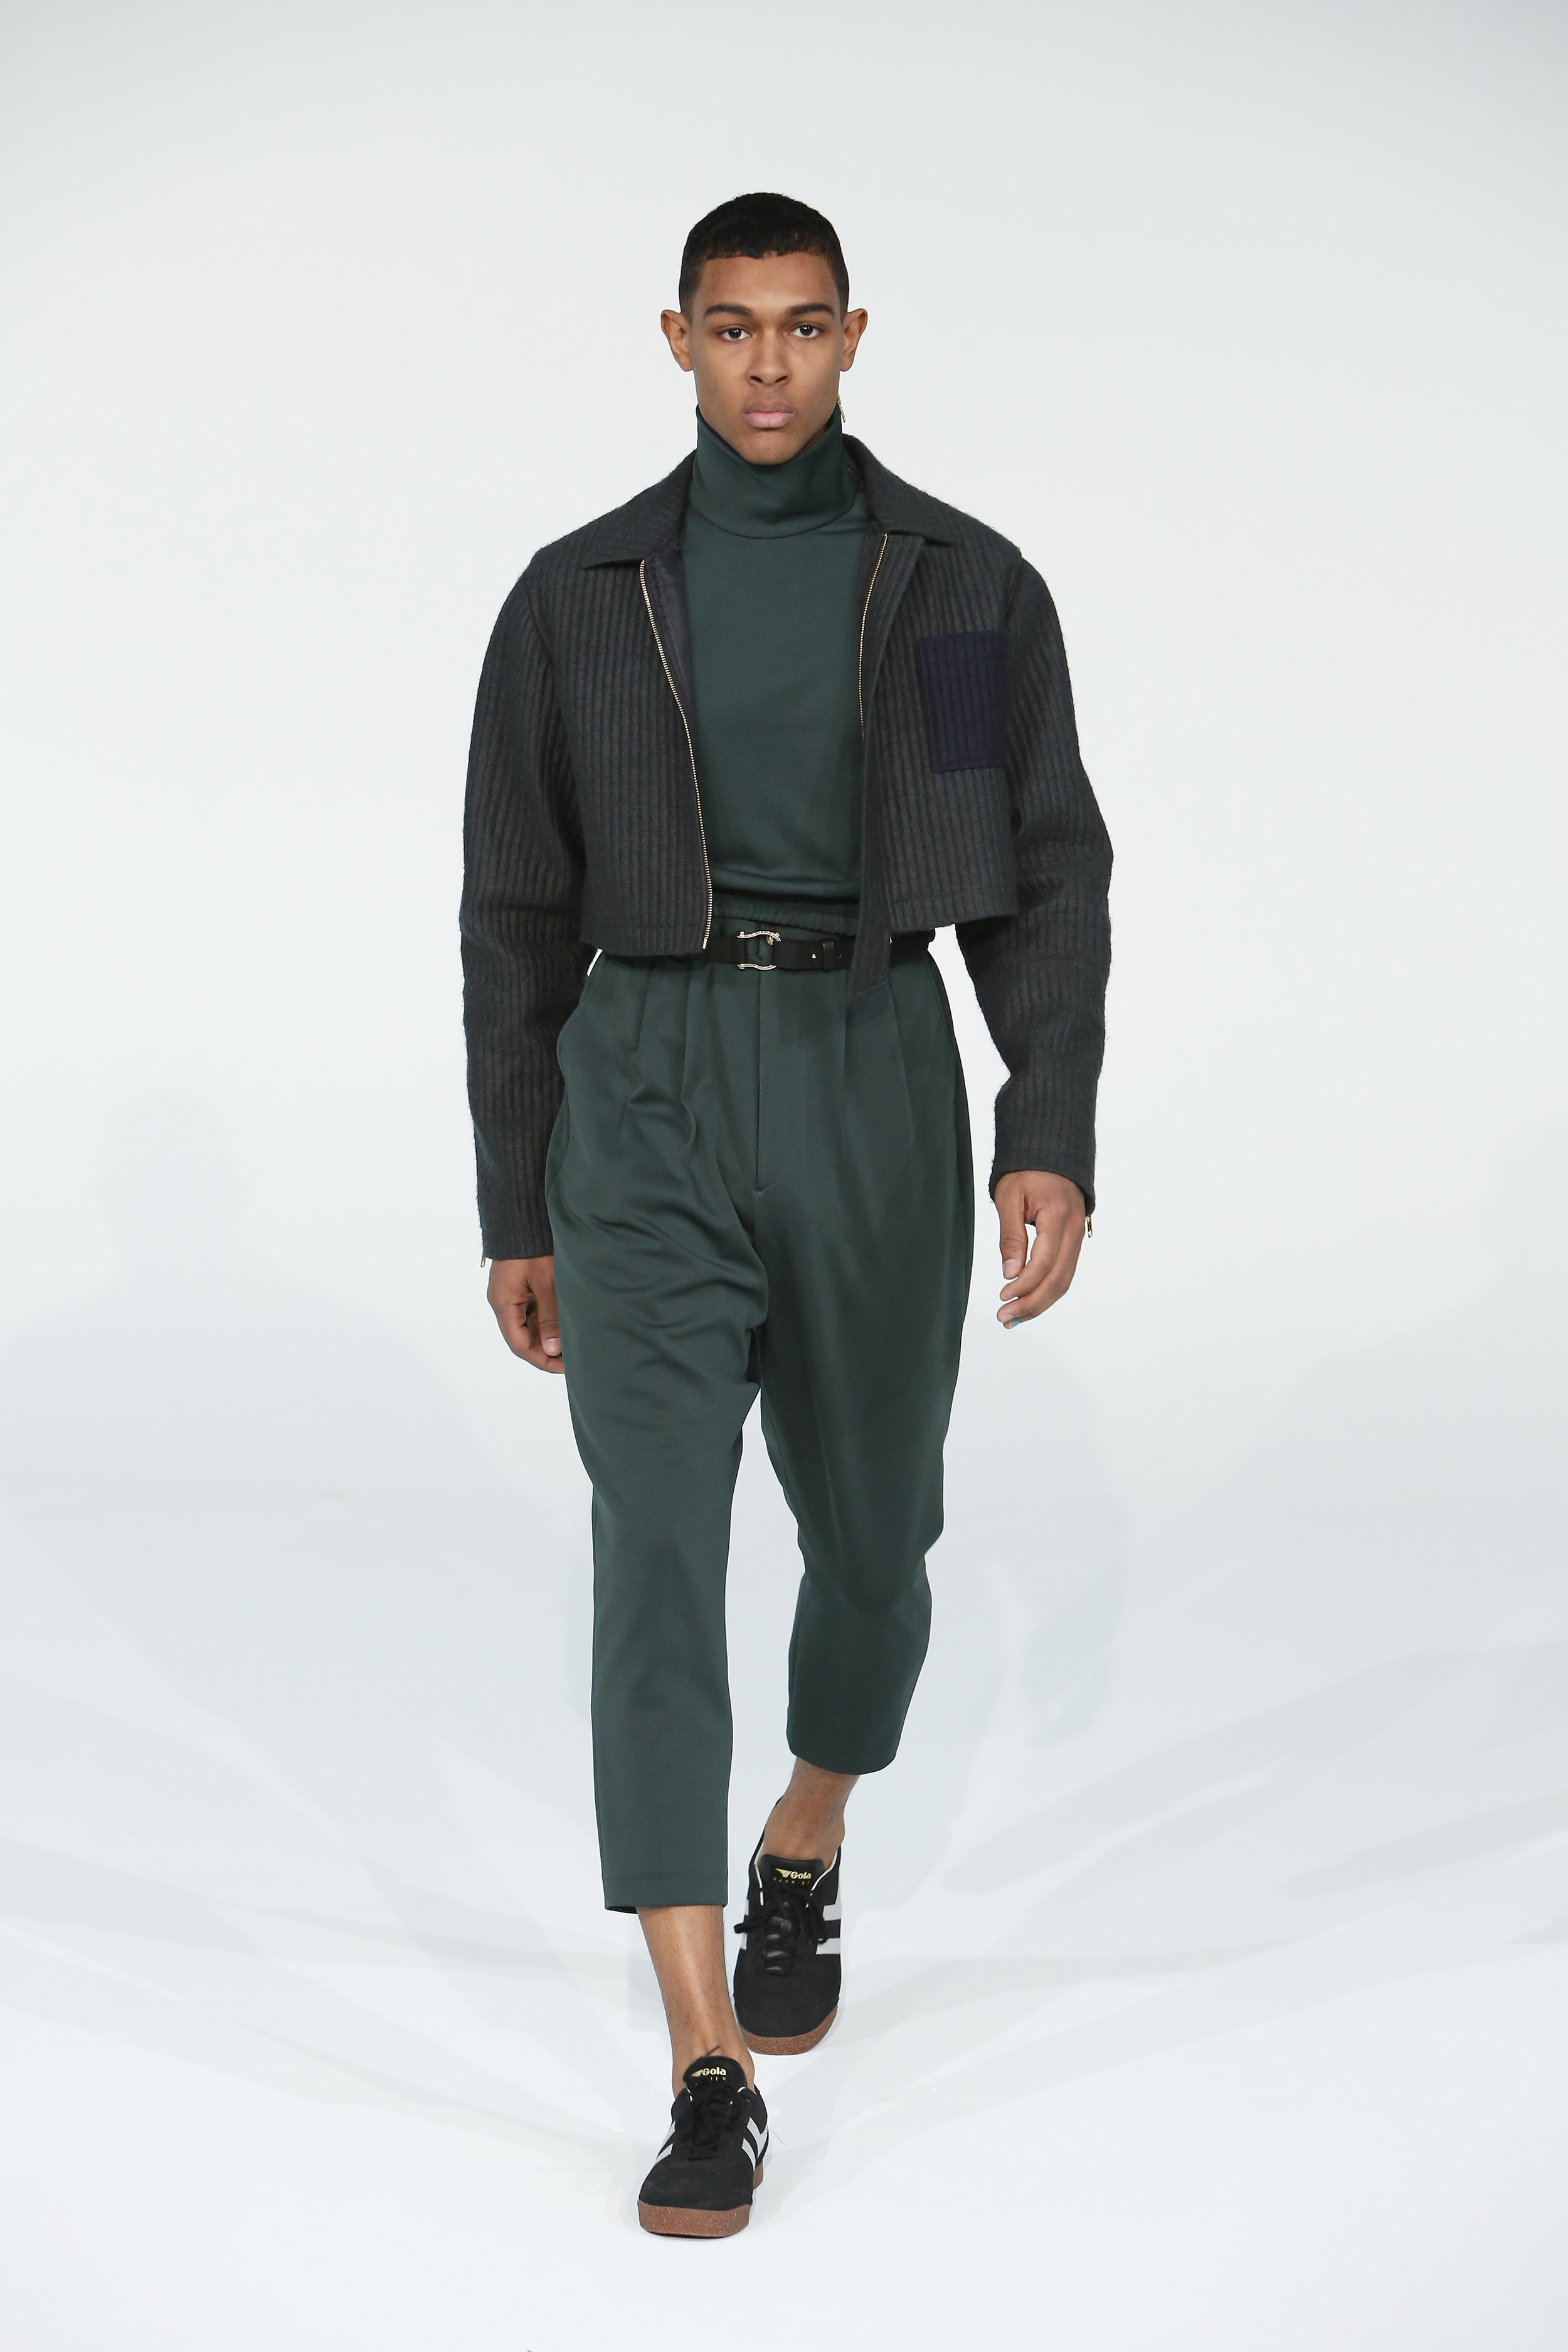 Copy of EMERALD CITY CROPPED JACKET